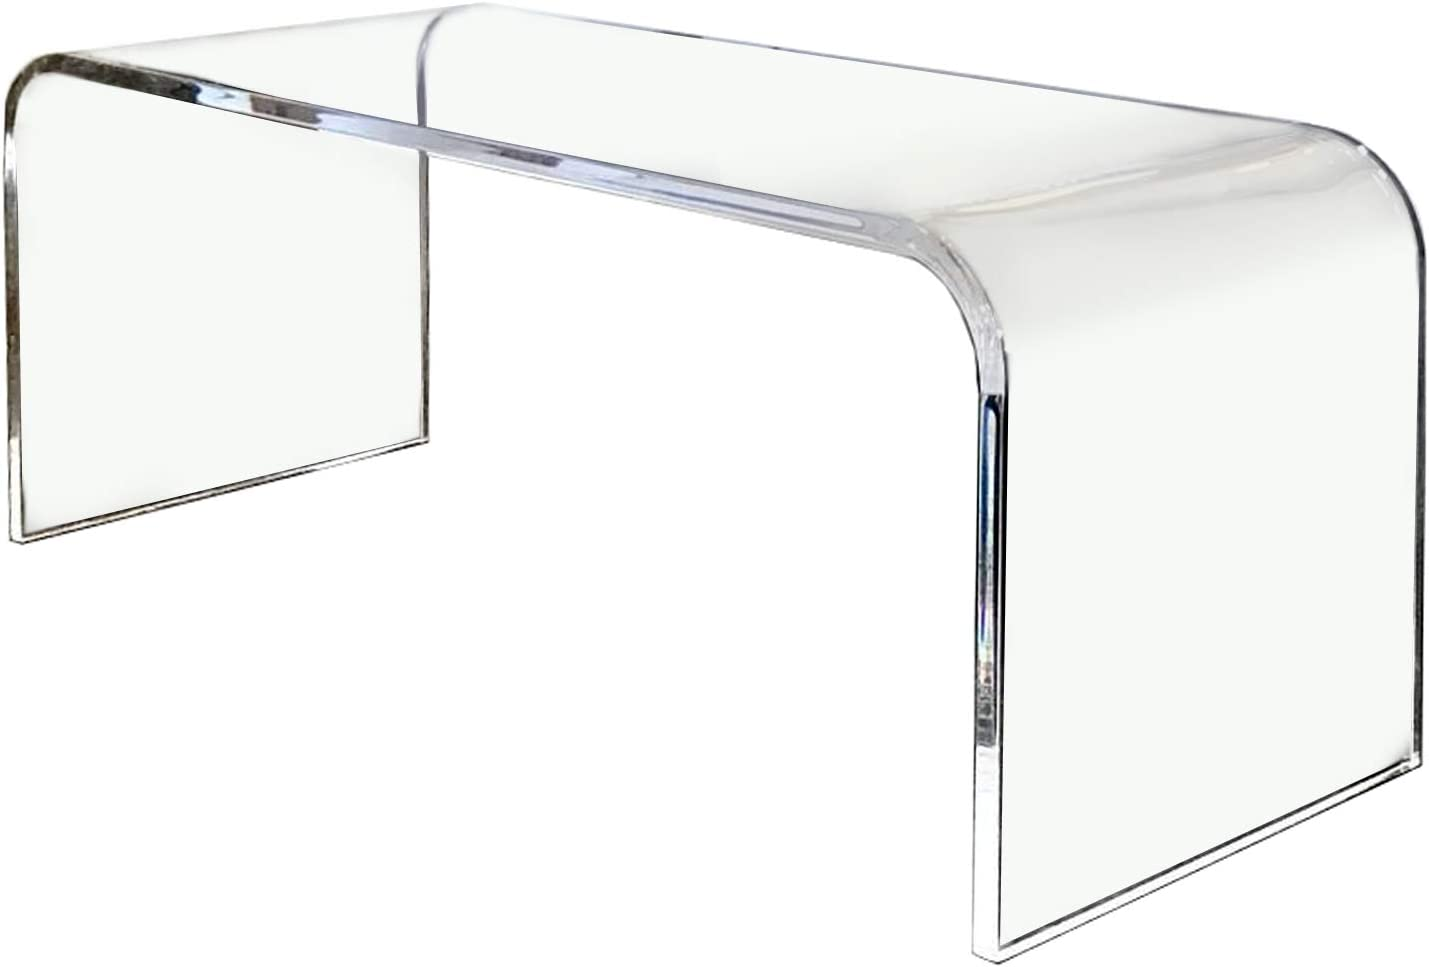 "southeastflorida Acrylic Coffee Table 32"" x 16"" x 16"" high x 3/4"" thick premium domestic material"